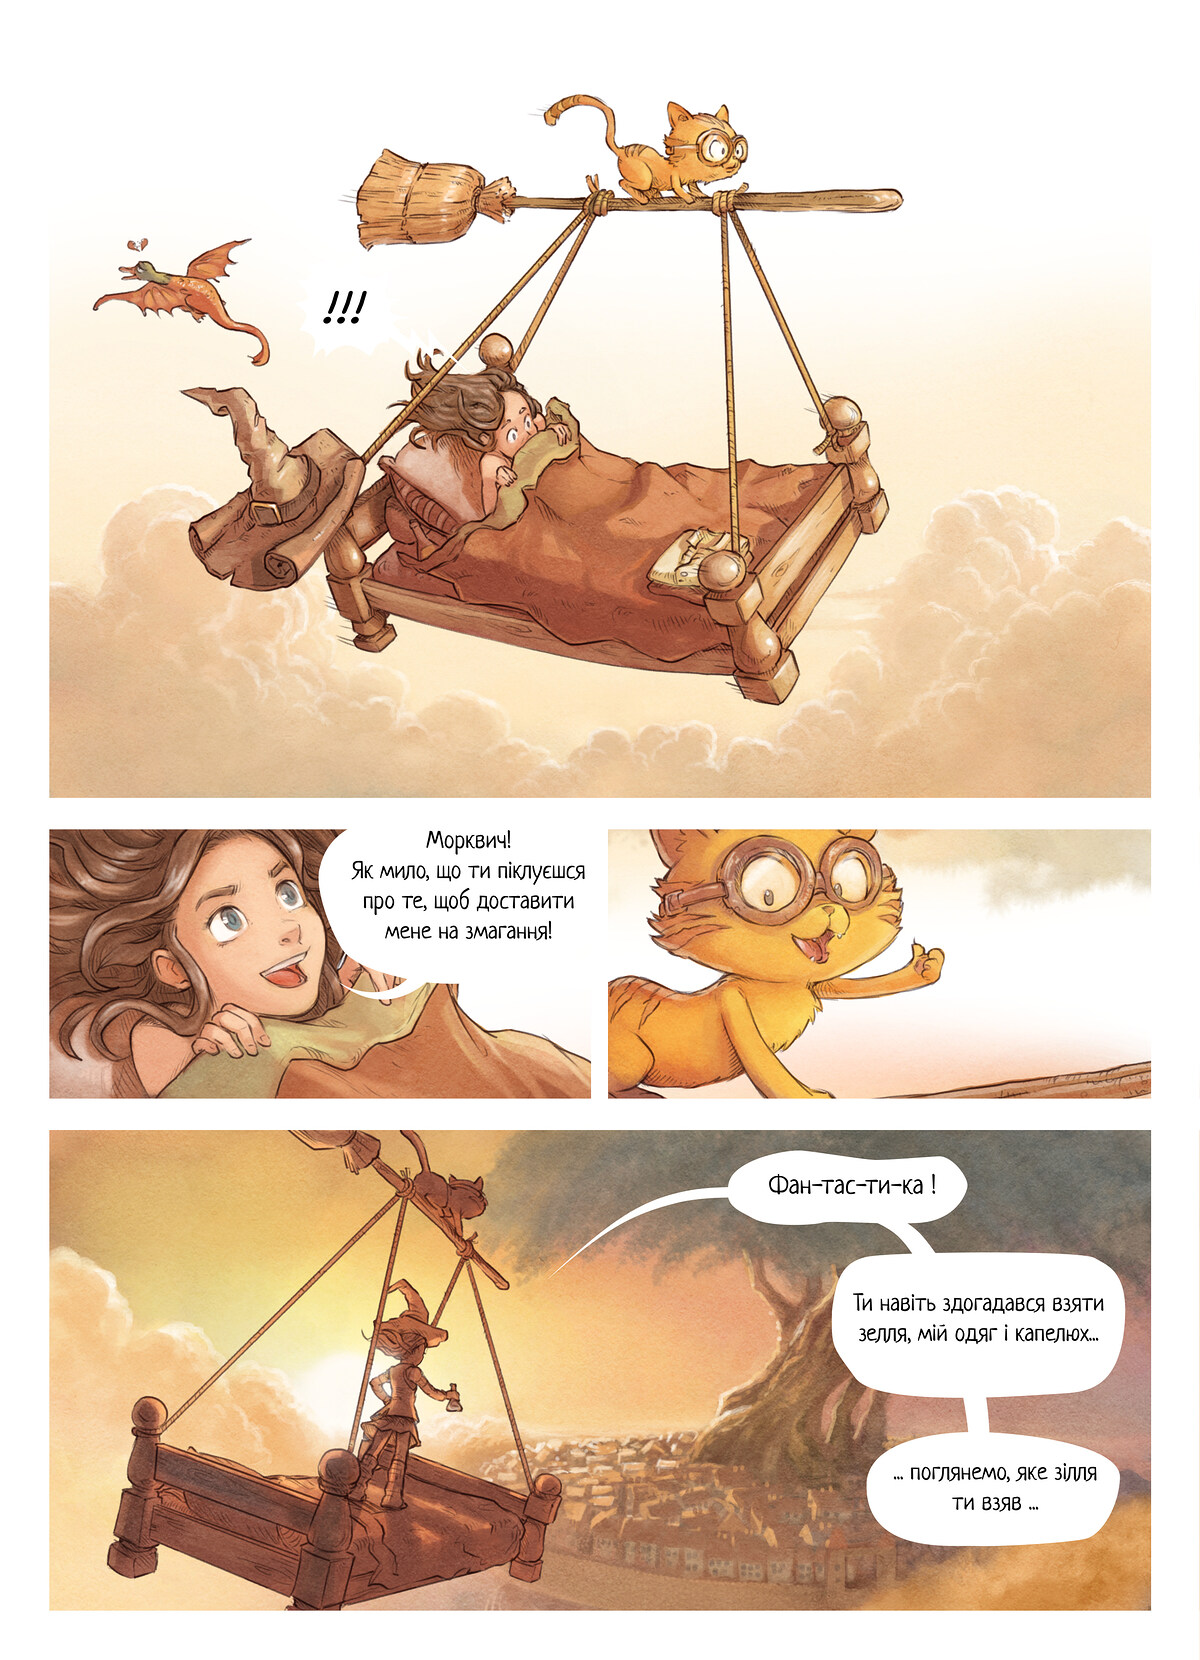 A webcomic page of Pepper&Carrot, епізод 6 [uk], стор. 2